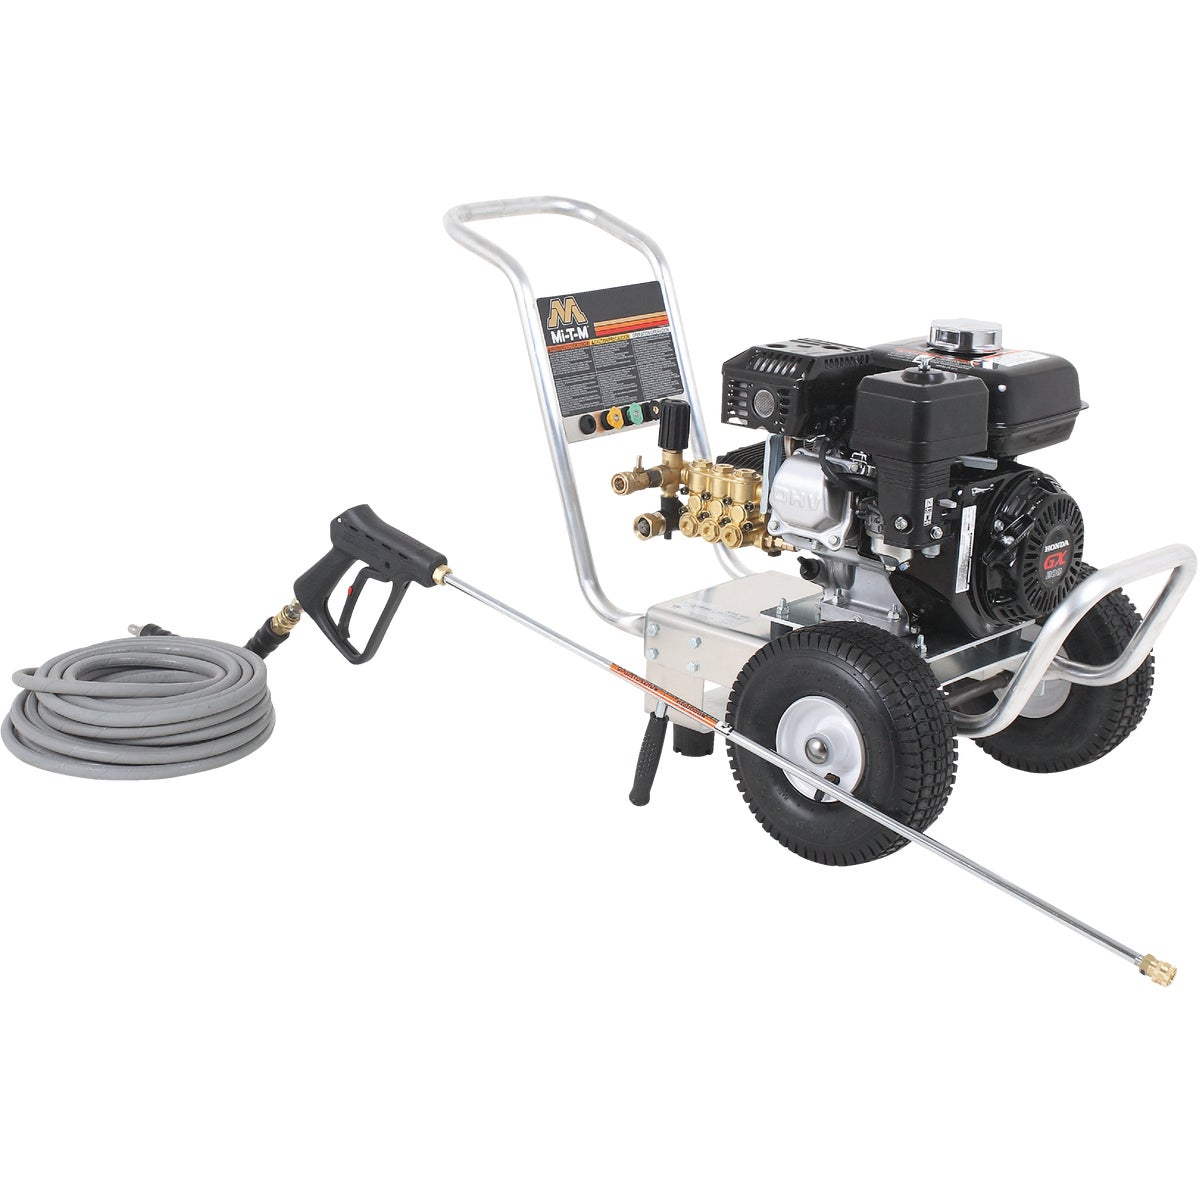 2700PSI PRESSURE WASHER - CS-2703-1MMH by Mi T M Corp